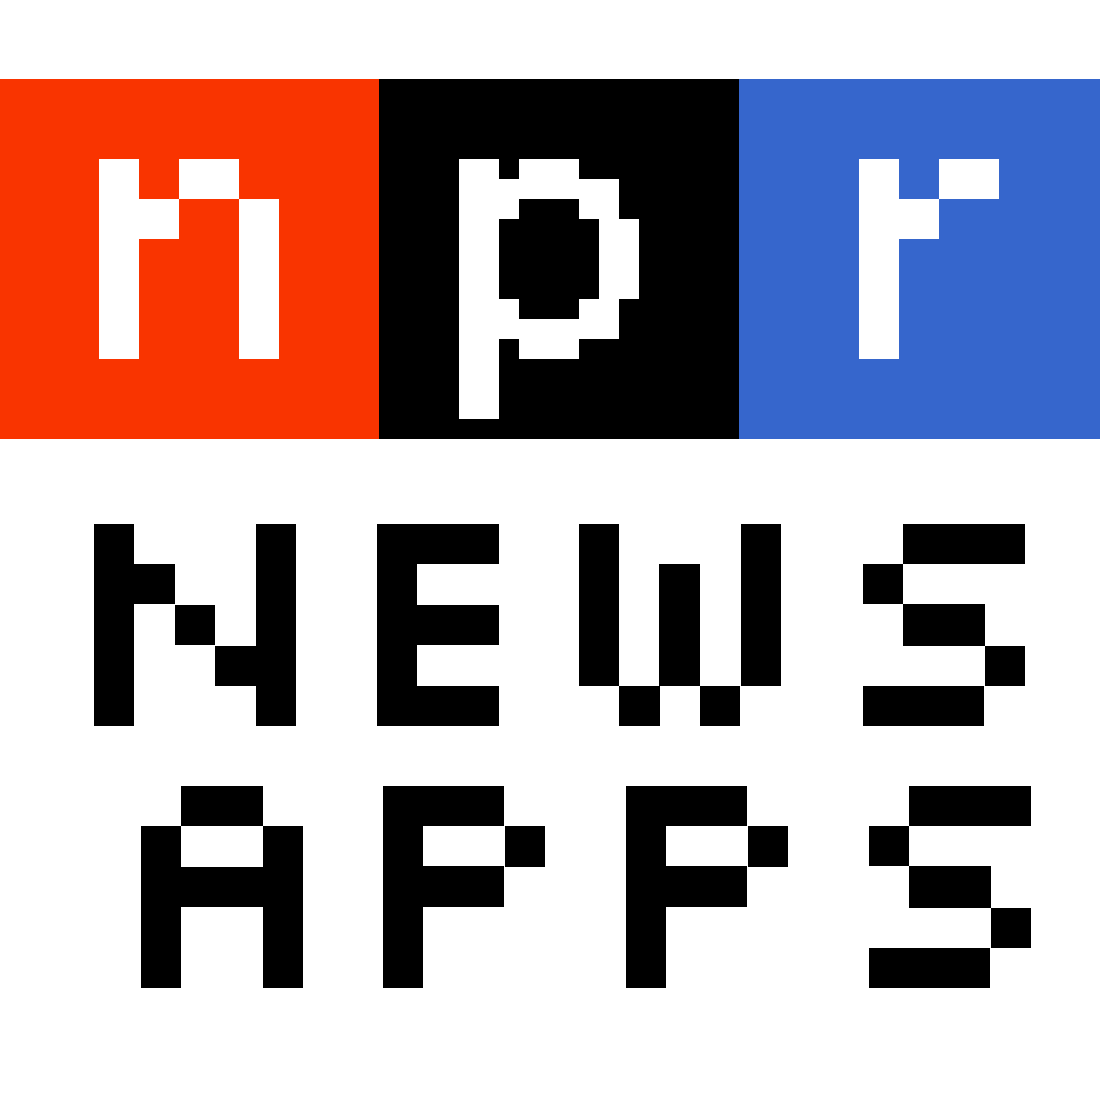 NPR News Apps | How to build a news app that never goes down and costs you practically nothing